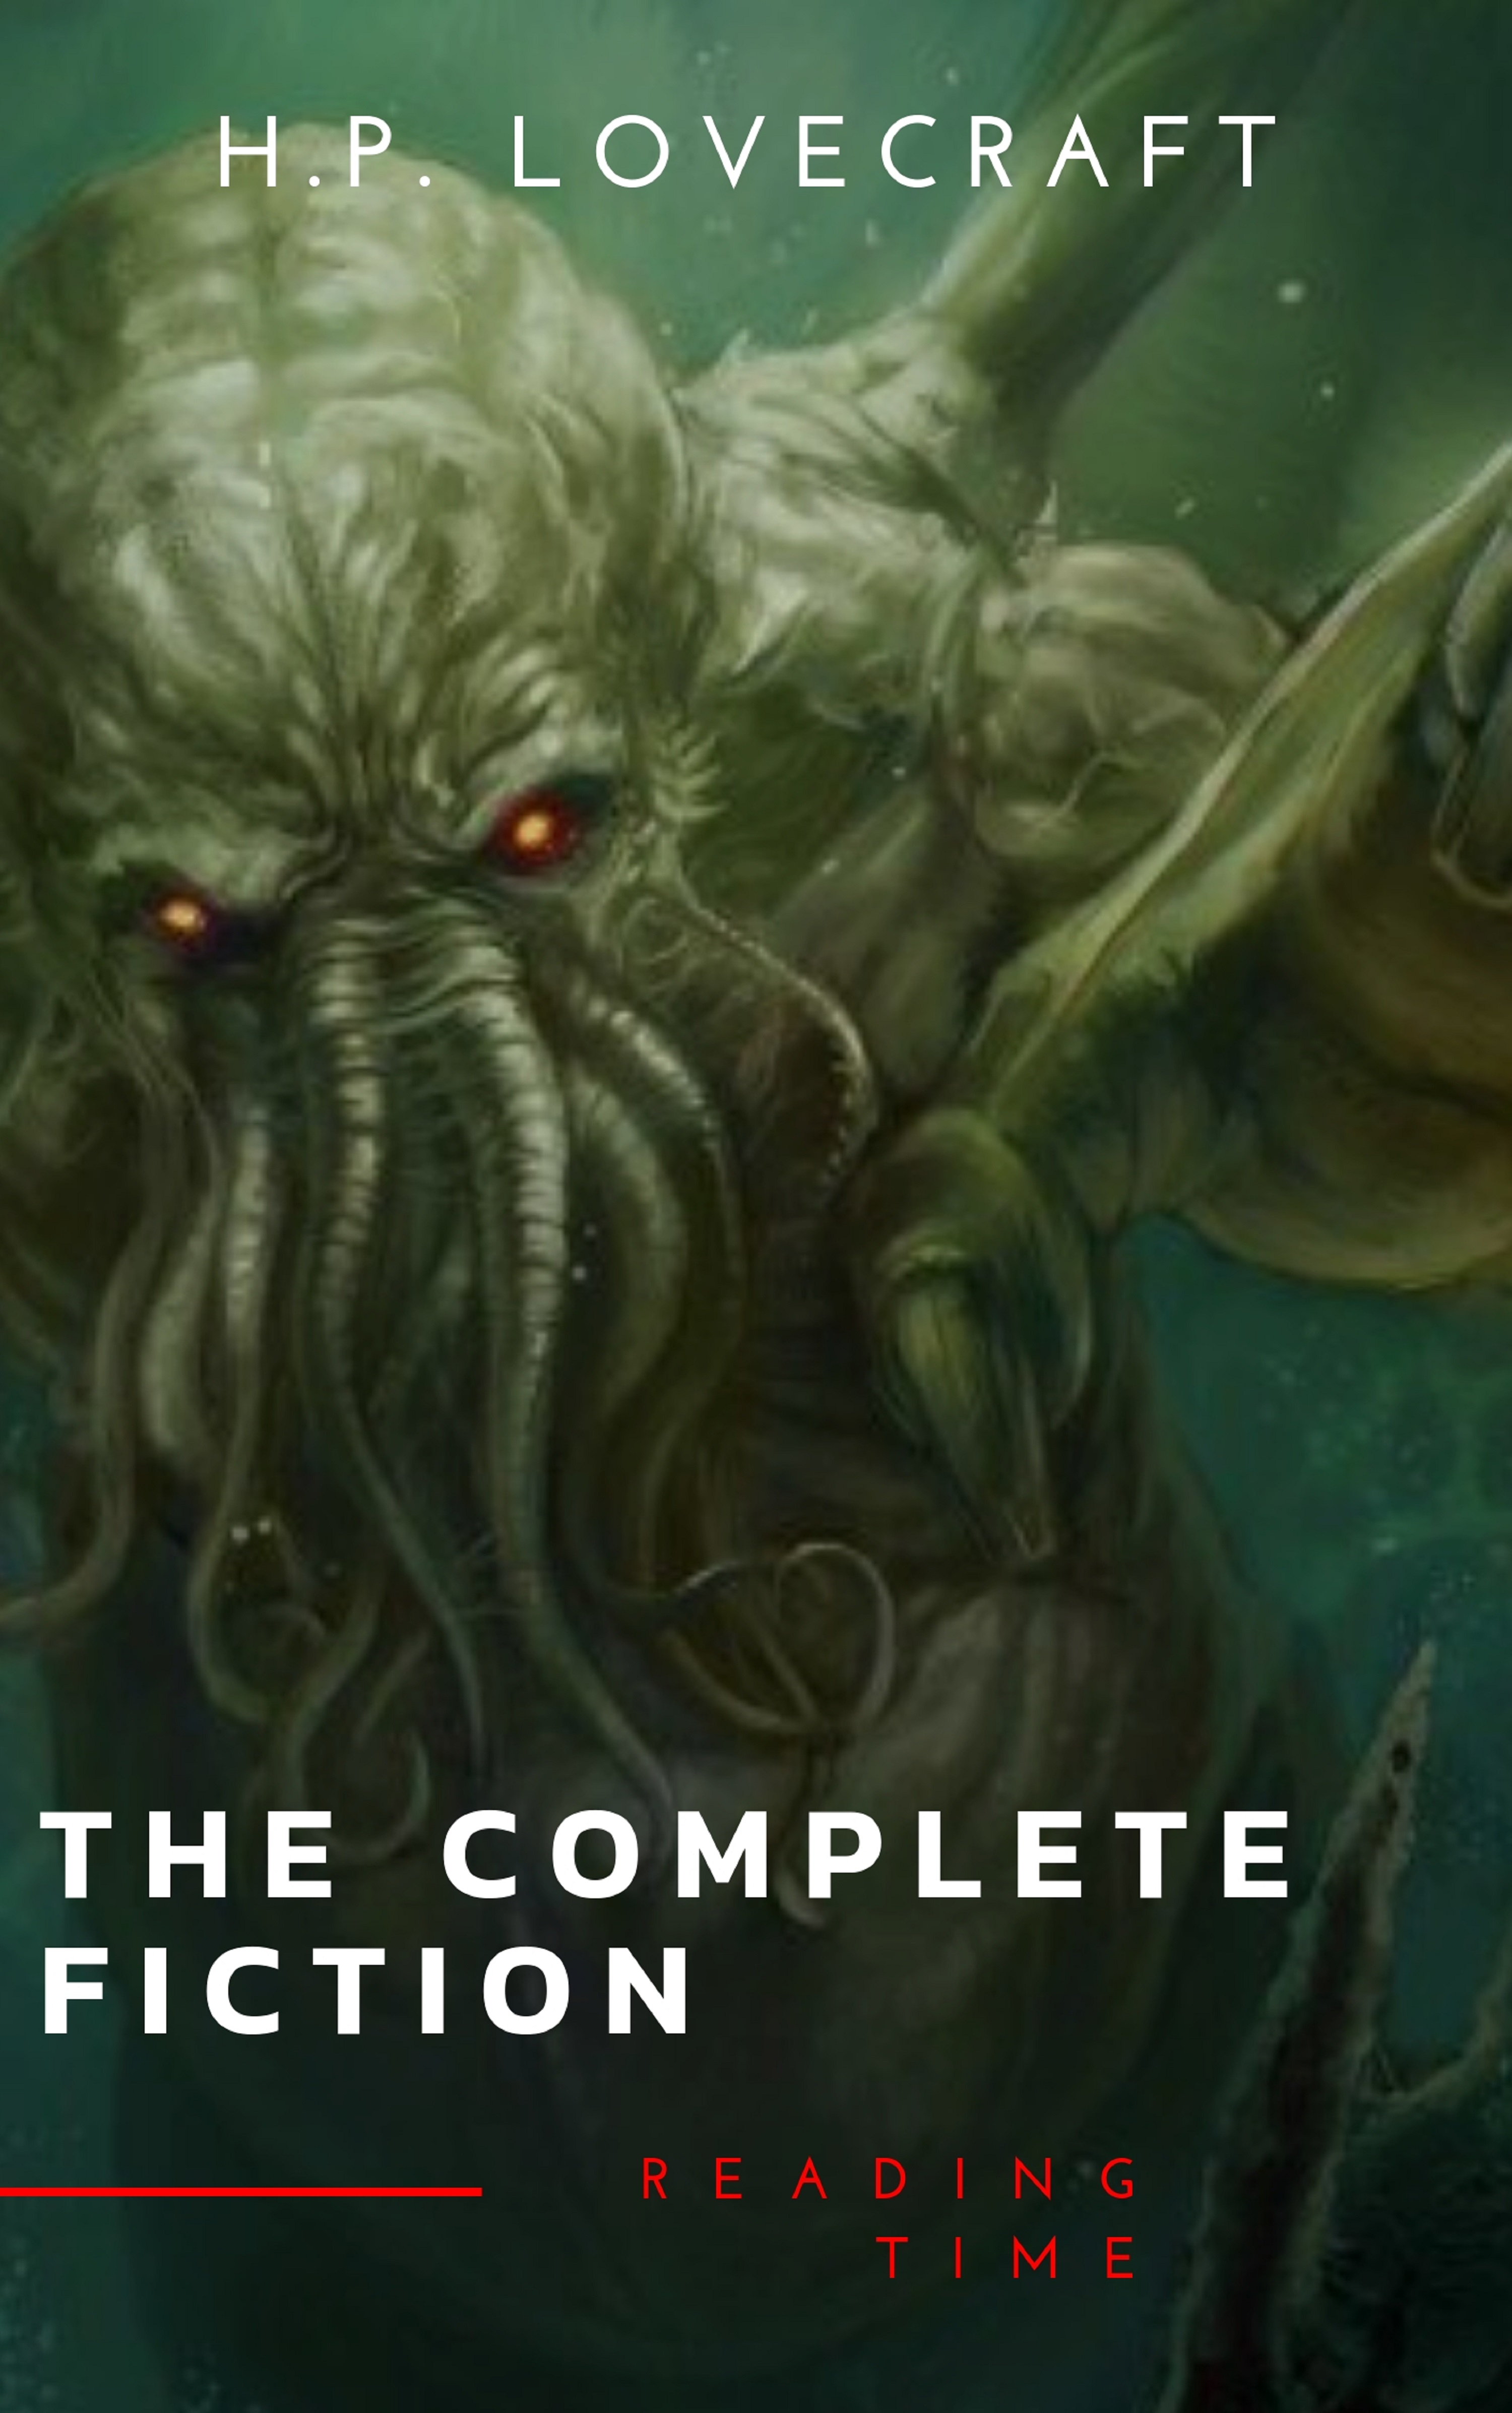 Reading Time The Complete Fiction of H. P. Lovecraft: At the Mountains of Madness, The Call of Cthulhu h p lovecraft the complete fiction of h p lovecraft